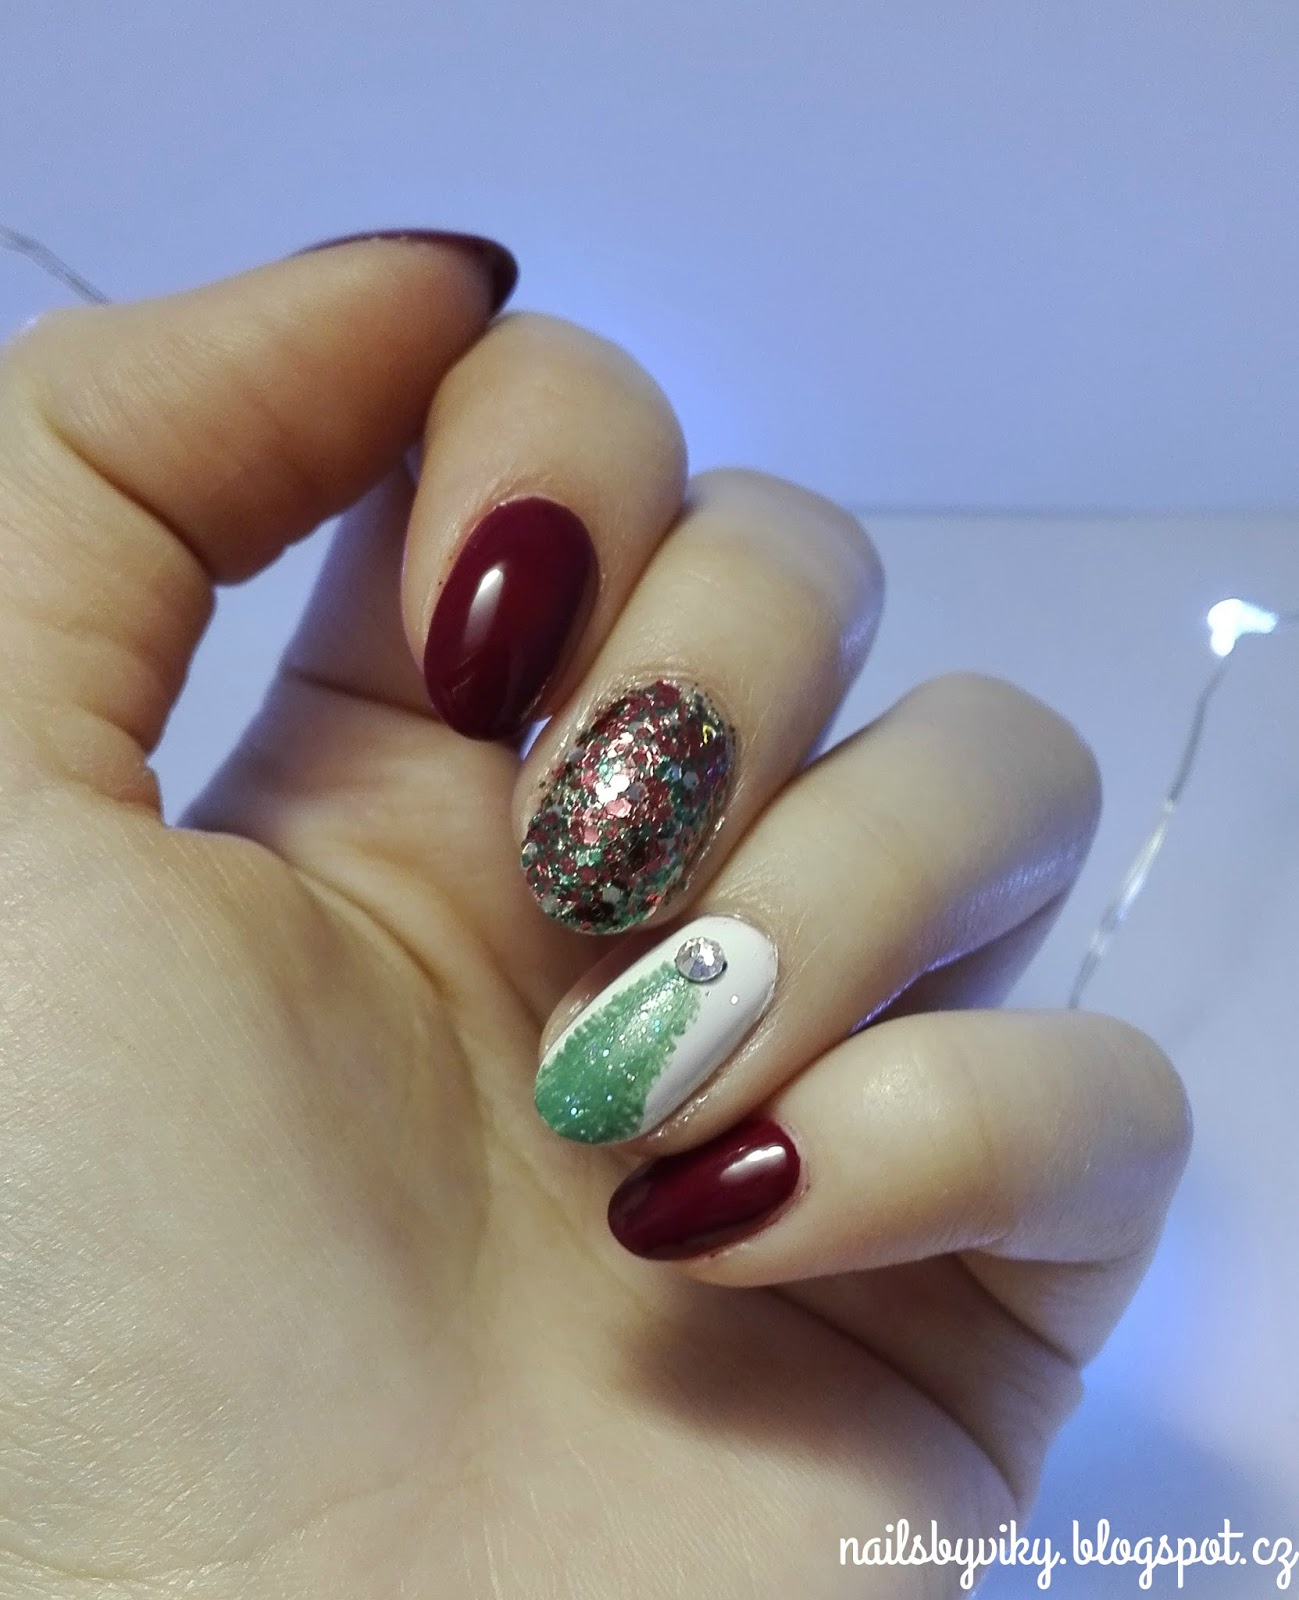 Nails By Viky 2016